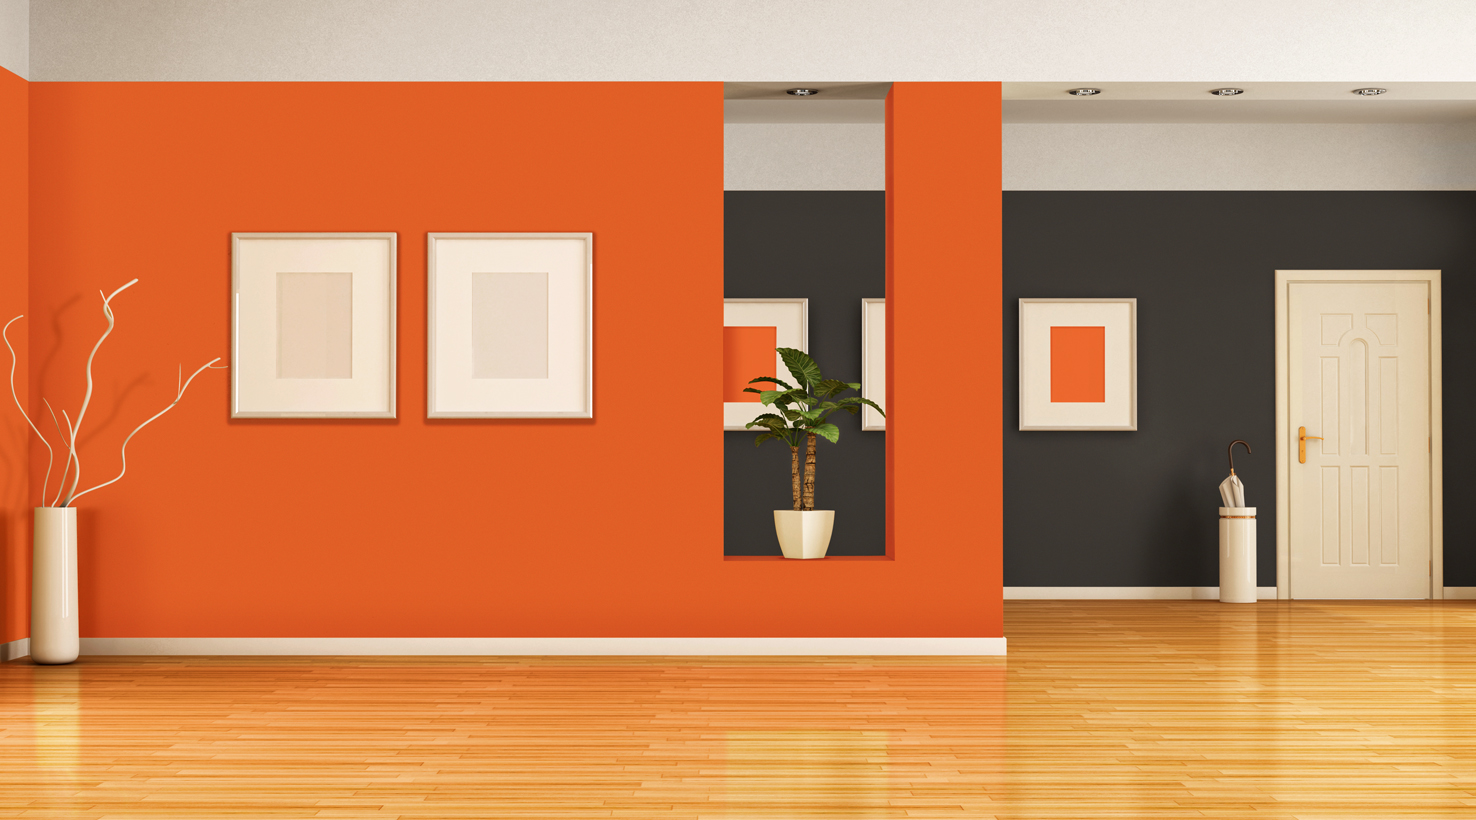 orange living room decorating ideas images paint color inspiration gallery sherwin williams oranges